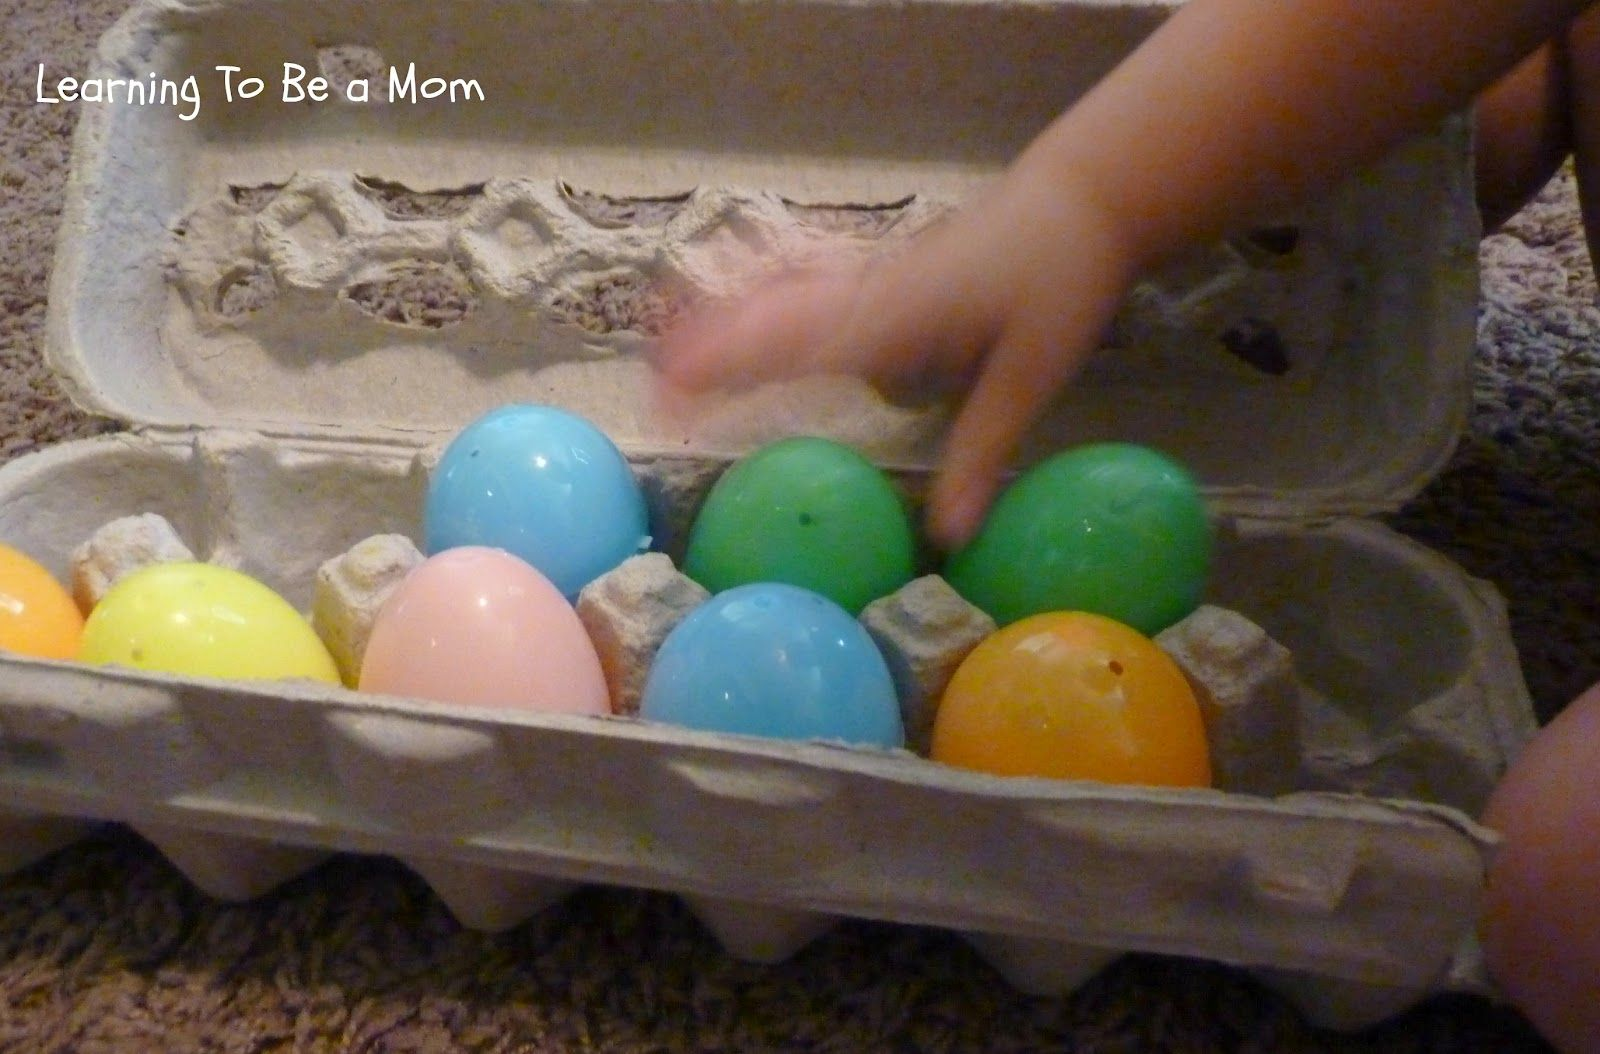 A week of fun toddler learning activities